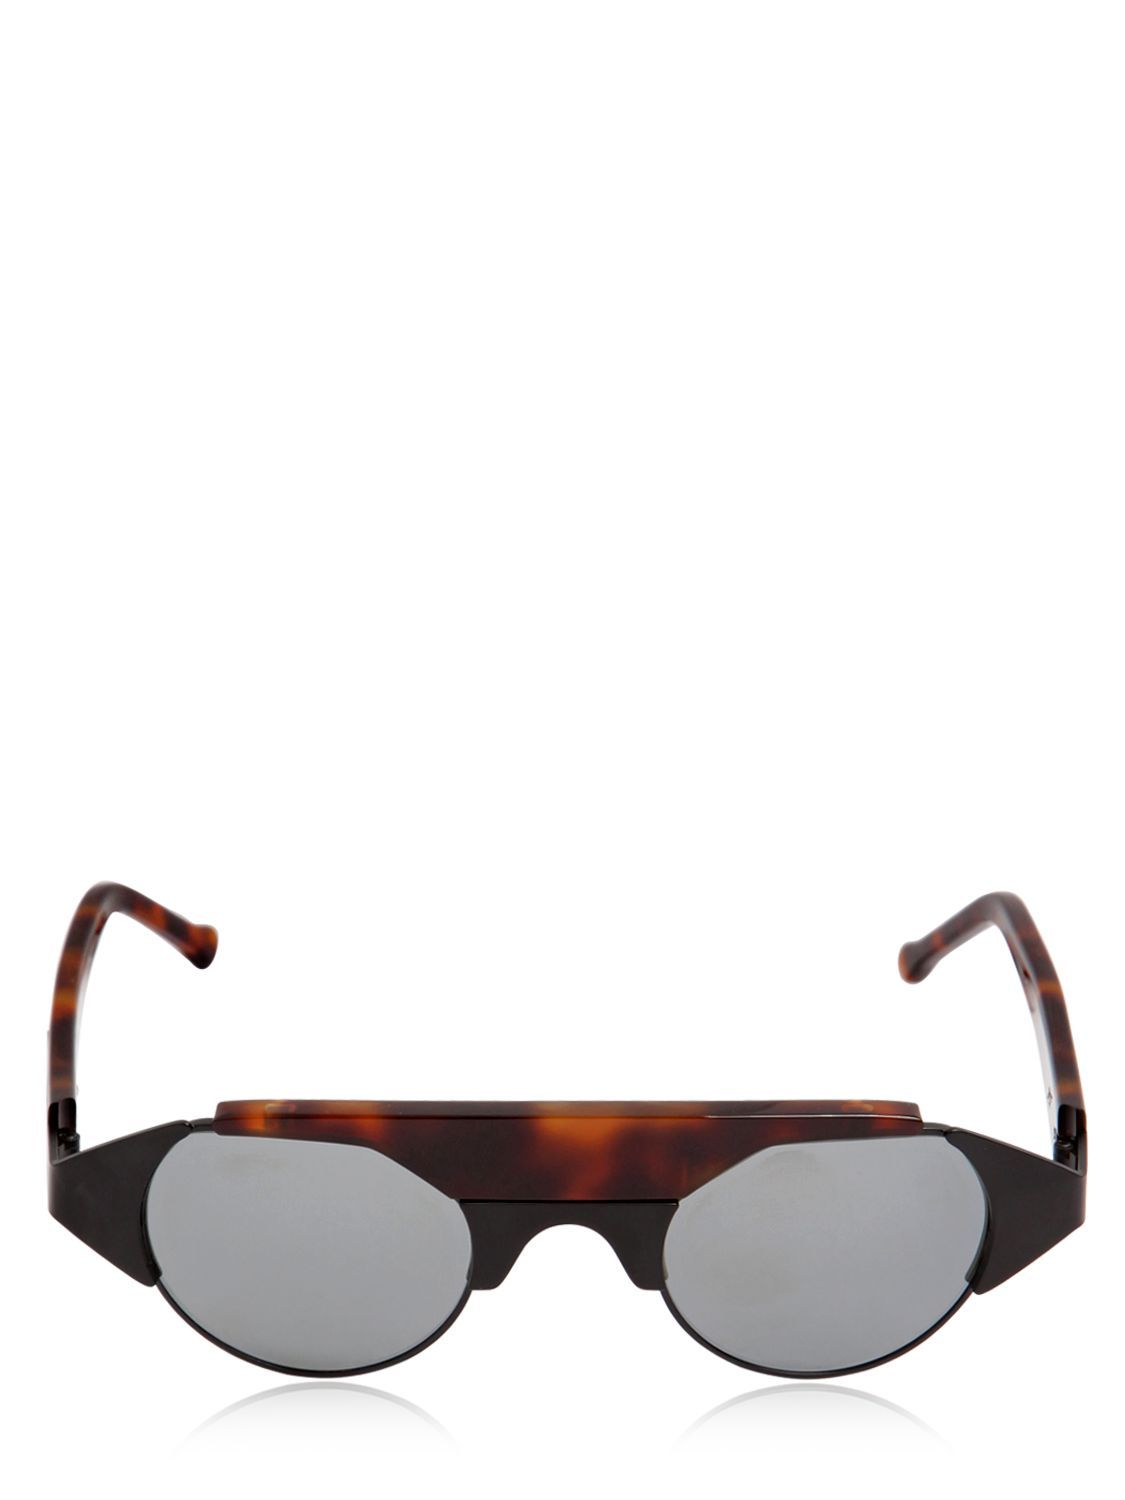 7227f417be LOEWE - ASHLEY MIRROR LENSES SUNGLASSES - LUISAVIAROMA - LUXURY SHOPPING  WORLDWIDE SHIPPING - FLORENCE